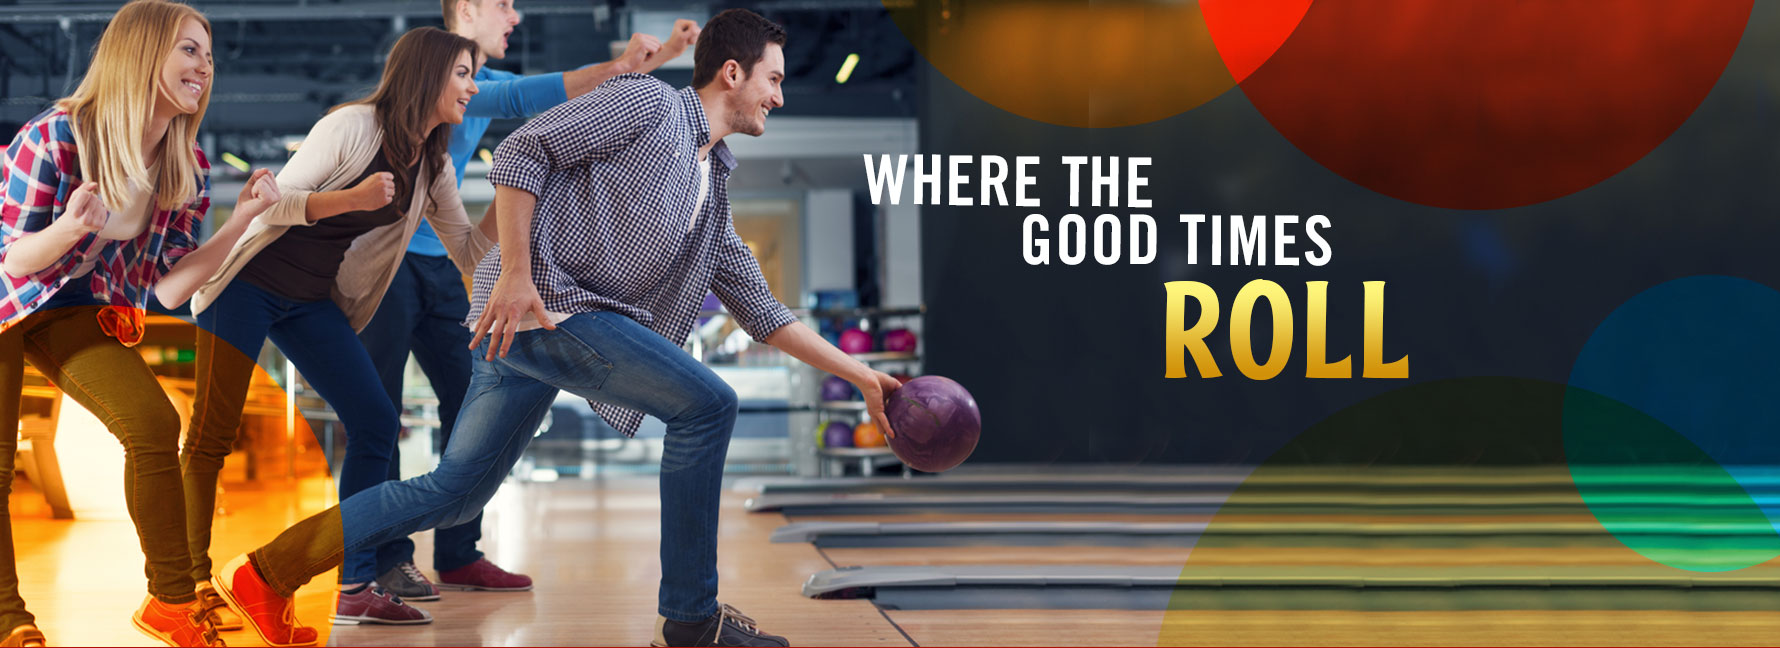 Bowling and Having a Good Time